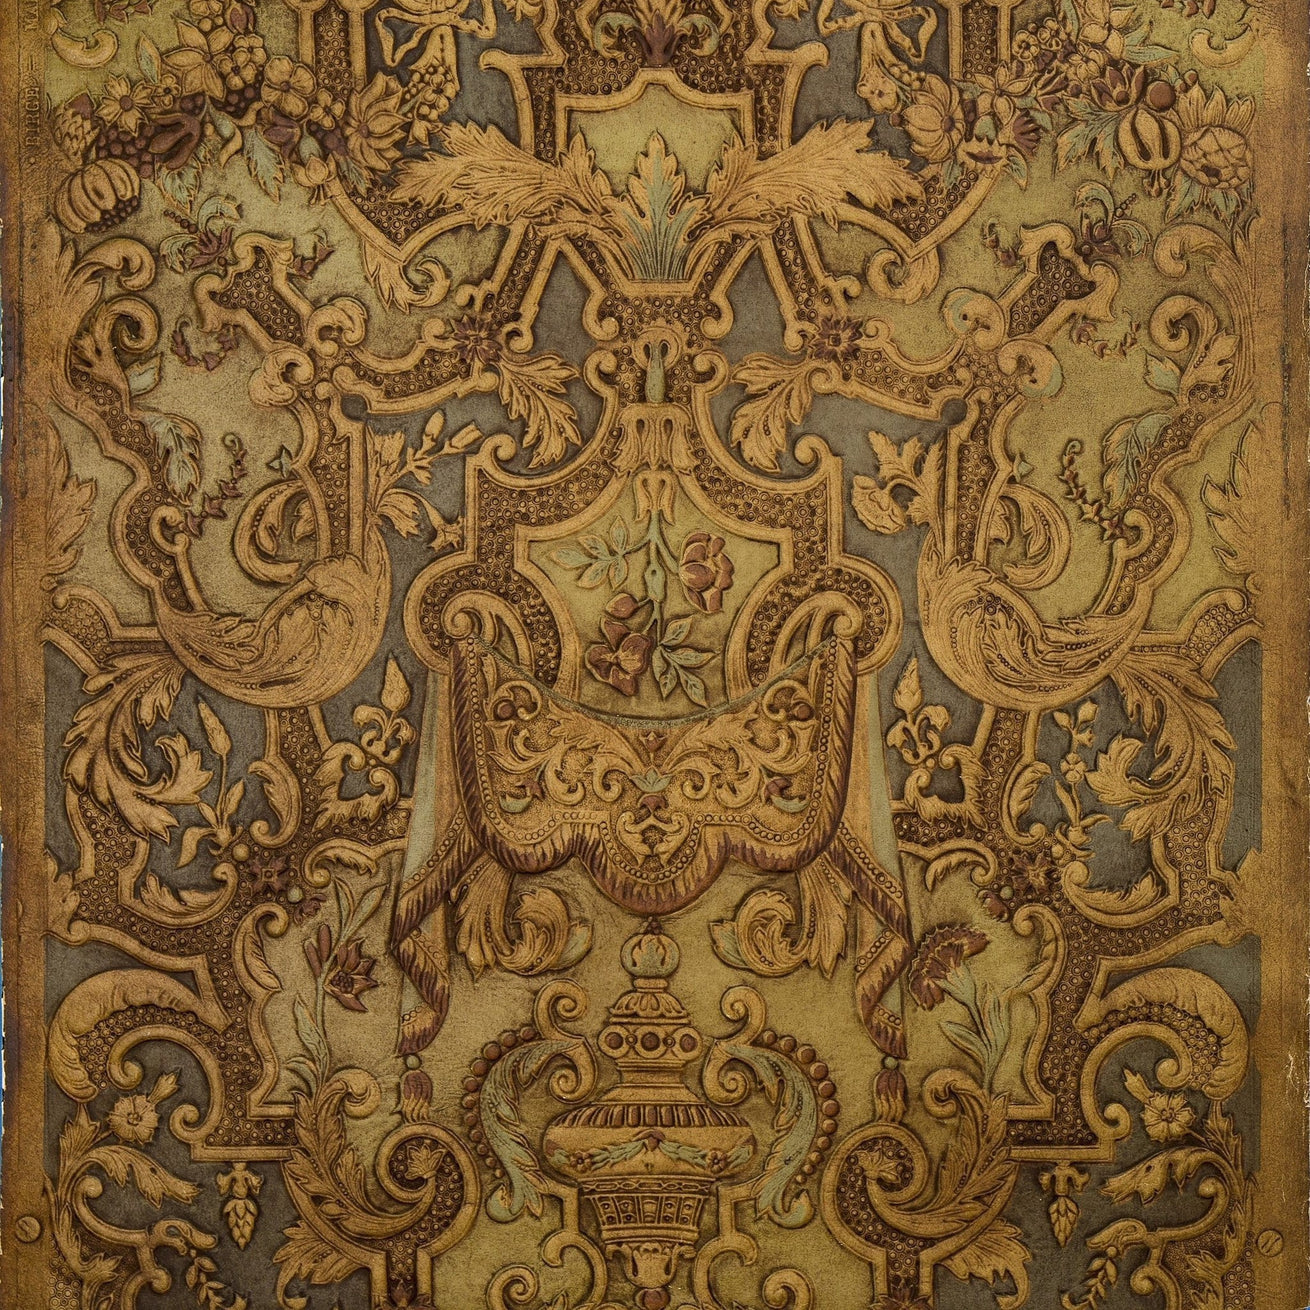 Spanish Embossed Leather - Antique Wallpaper Remnant